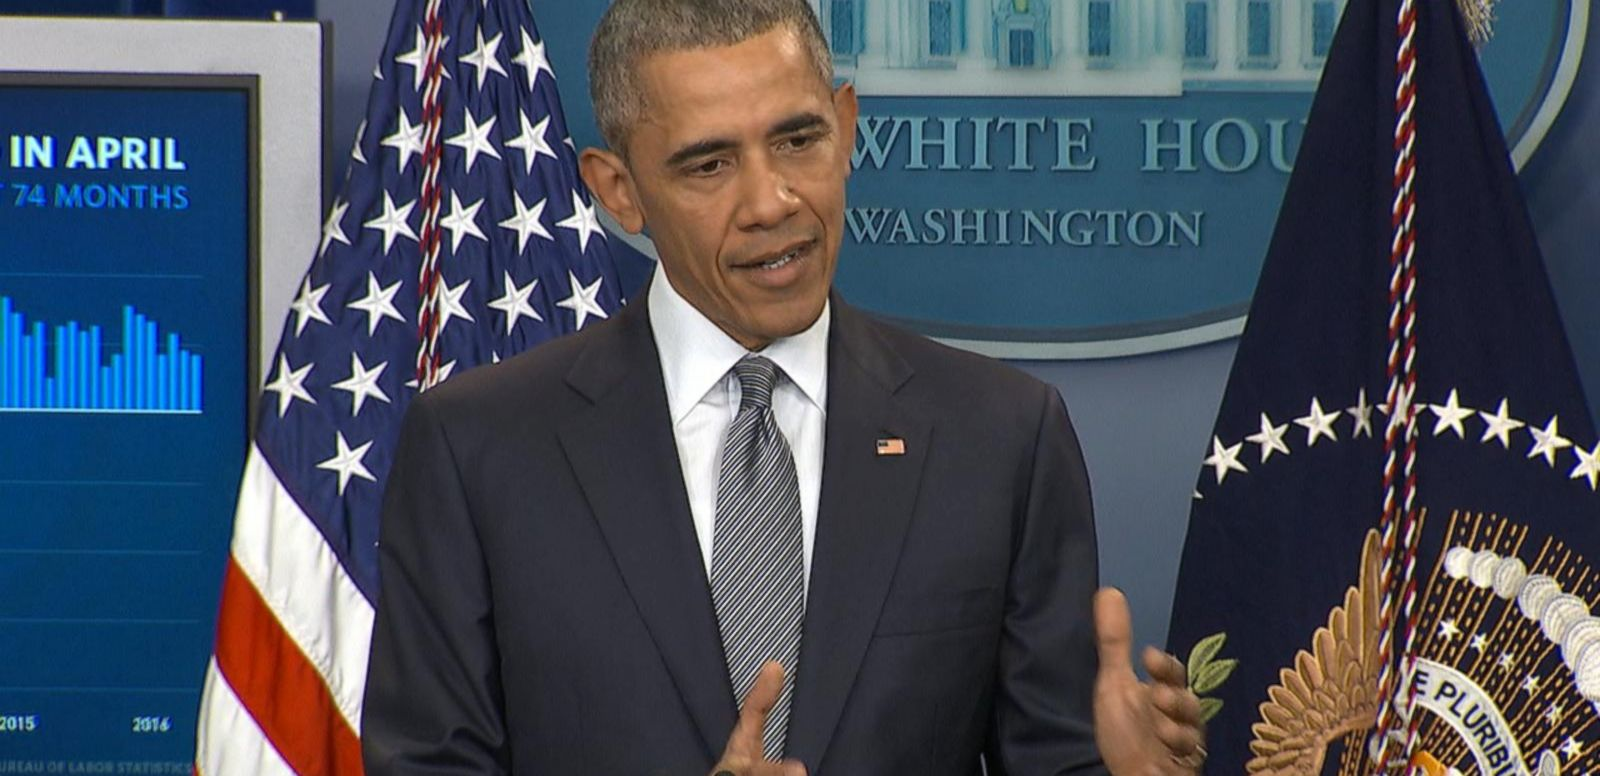 """Let's let the process play itself out,"" said President Obama."